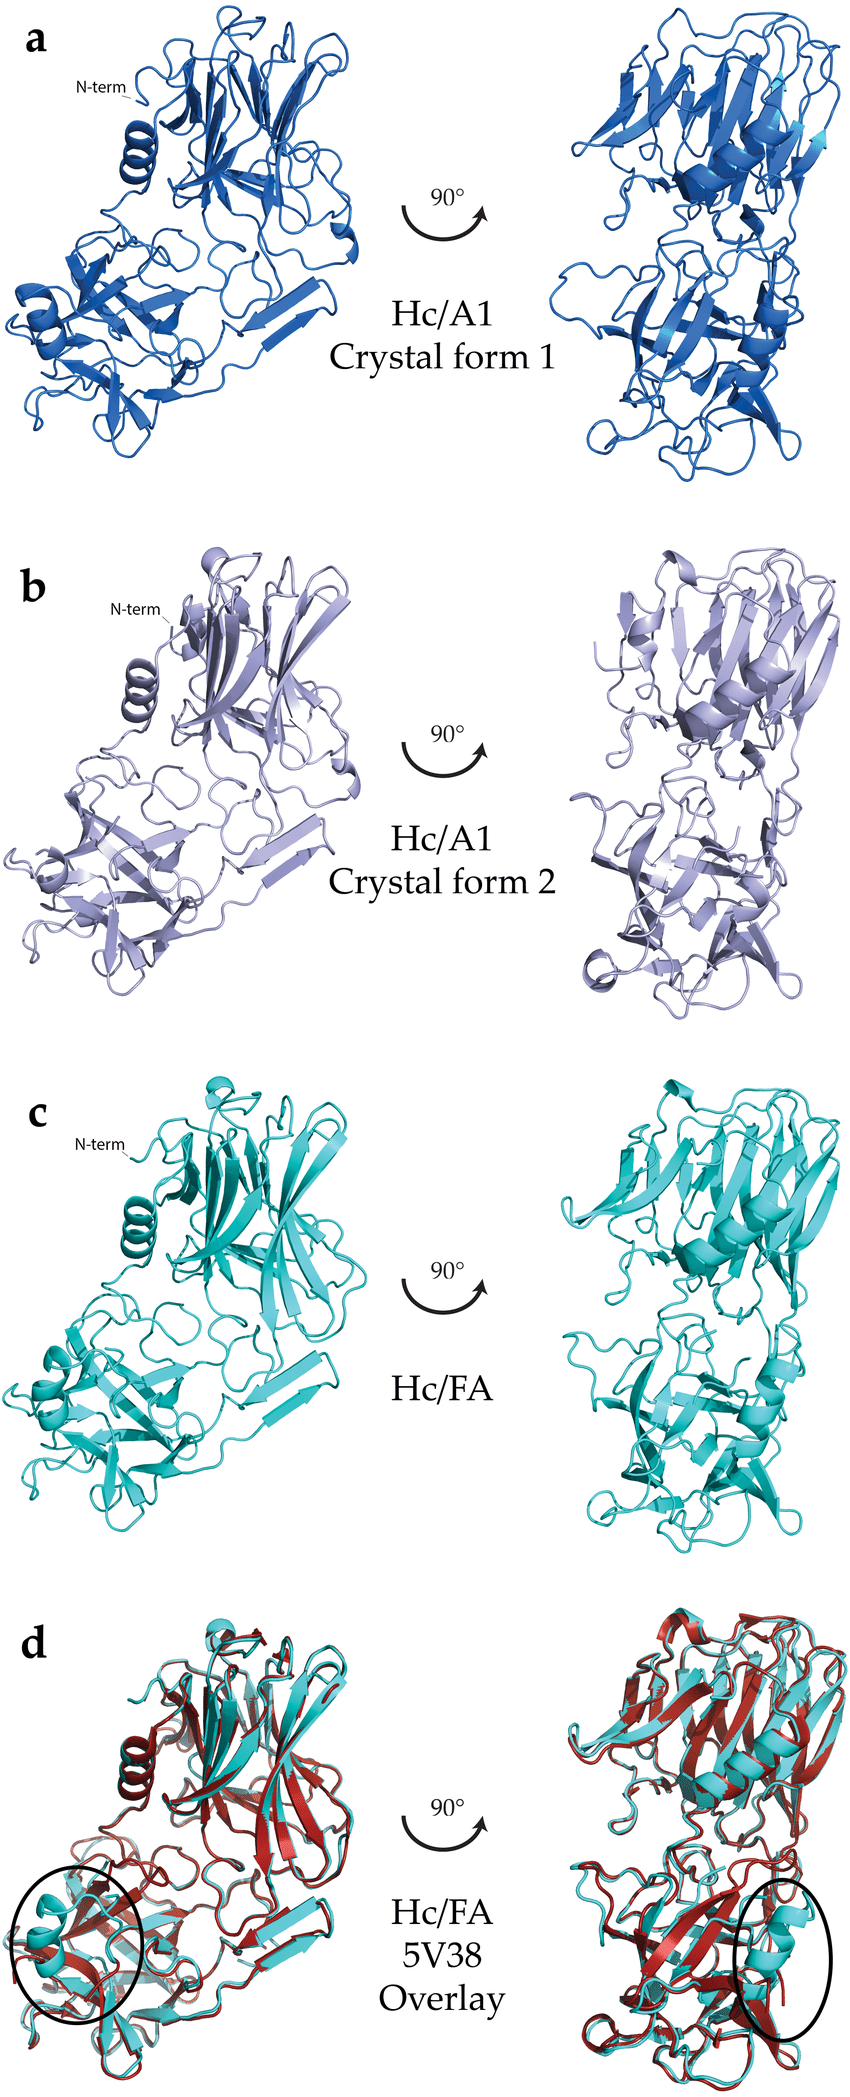 medium resolution of crystal structures of hc domains a hc a1 domain crystal form